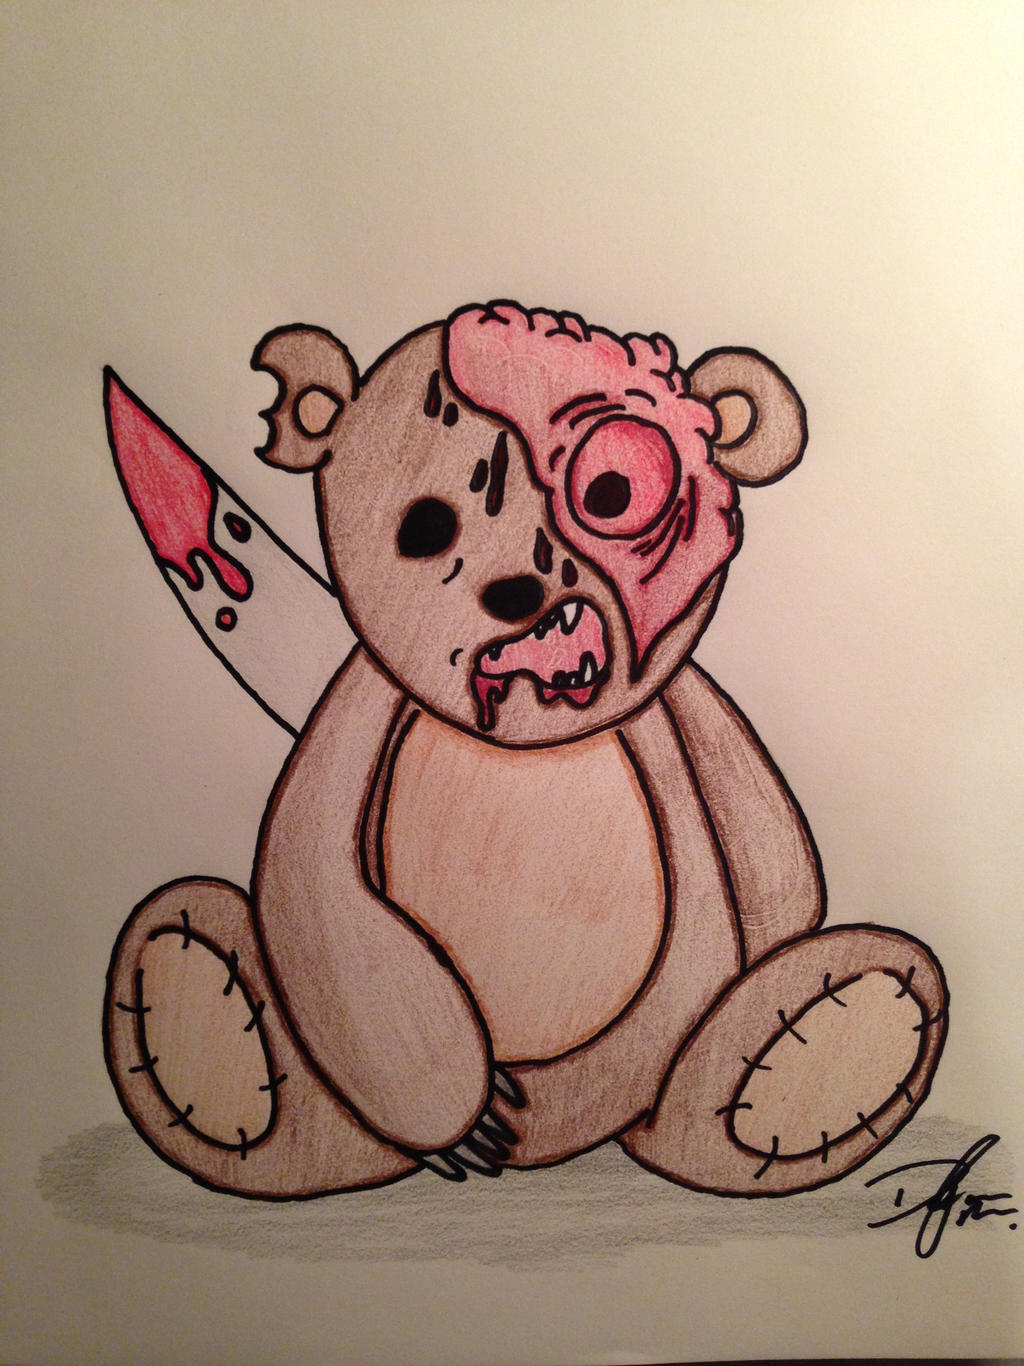 Evil Teddy Bear by DylanMilam on DeviantArt